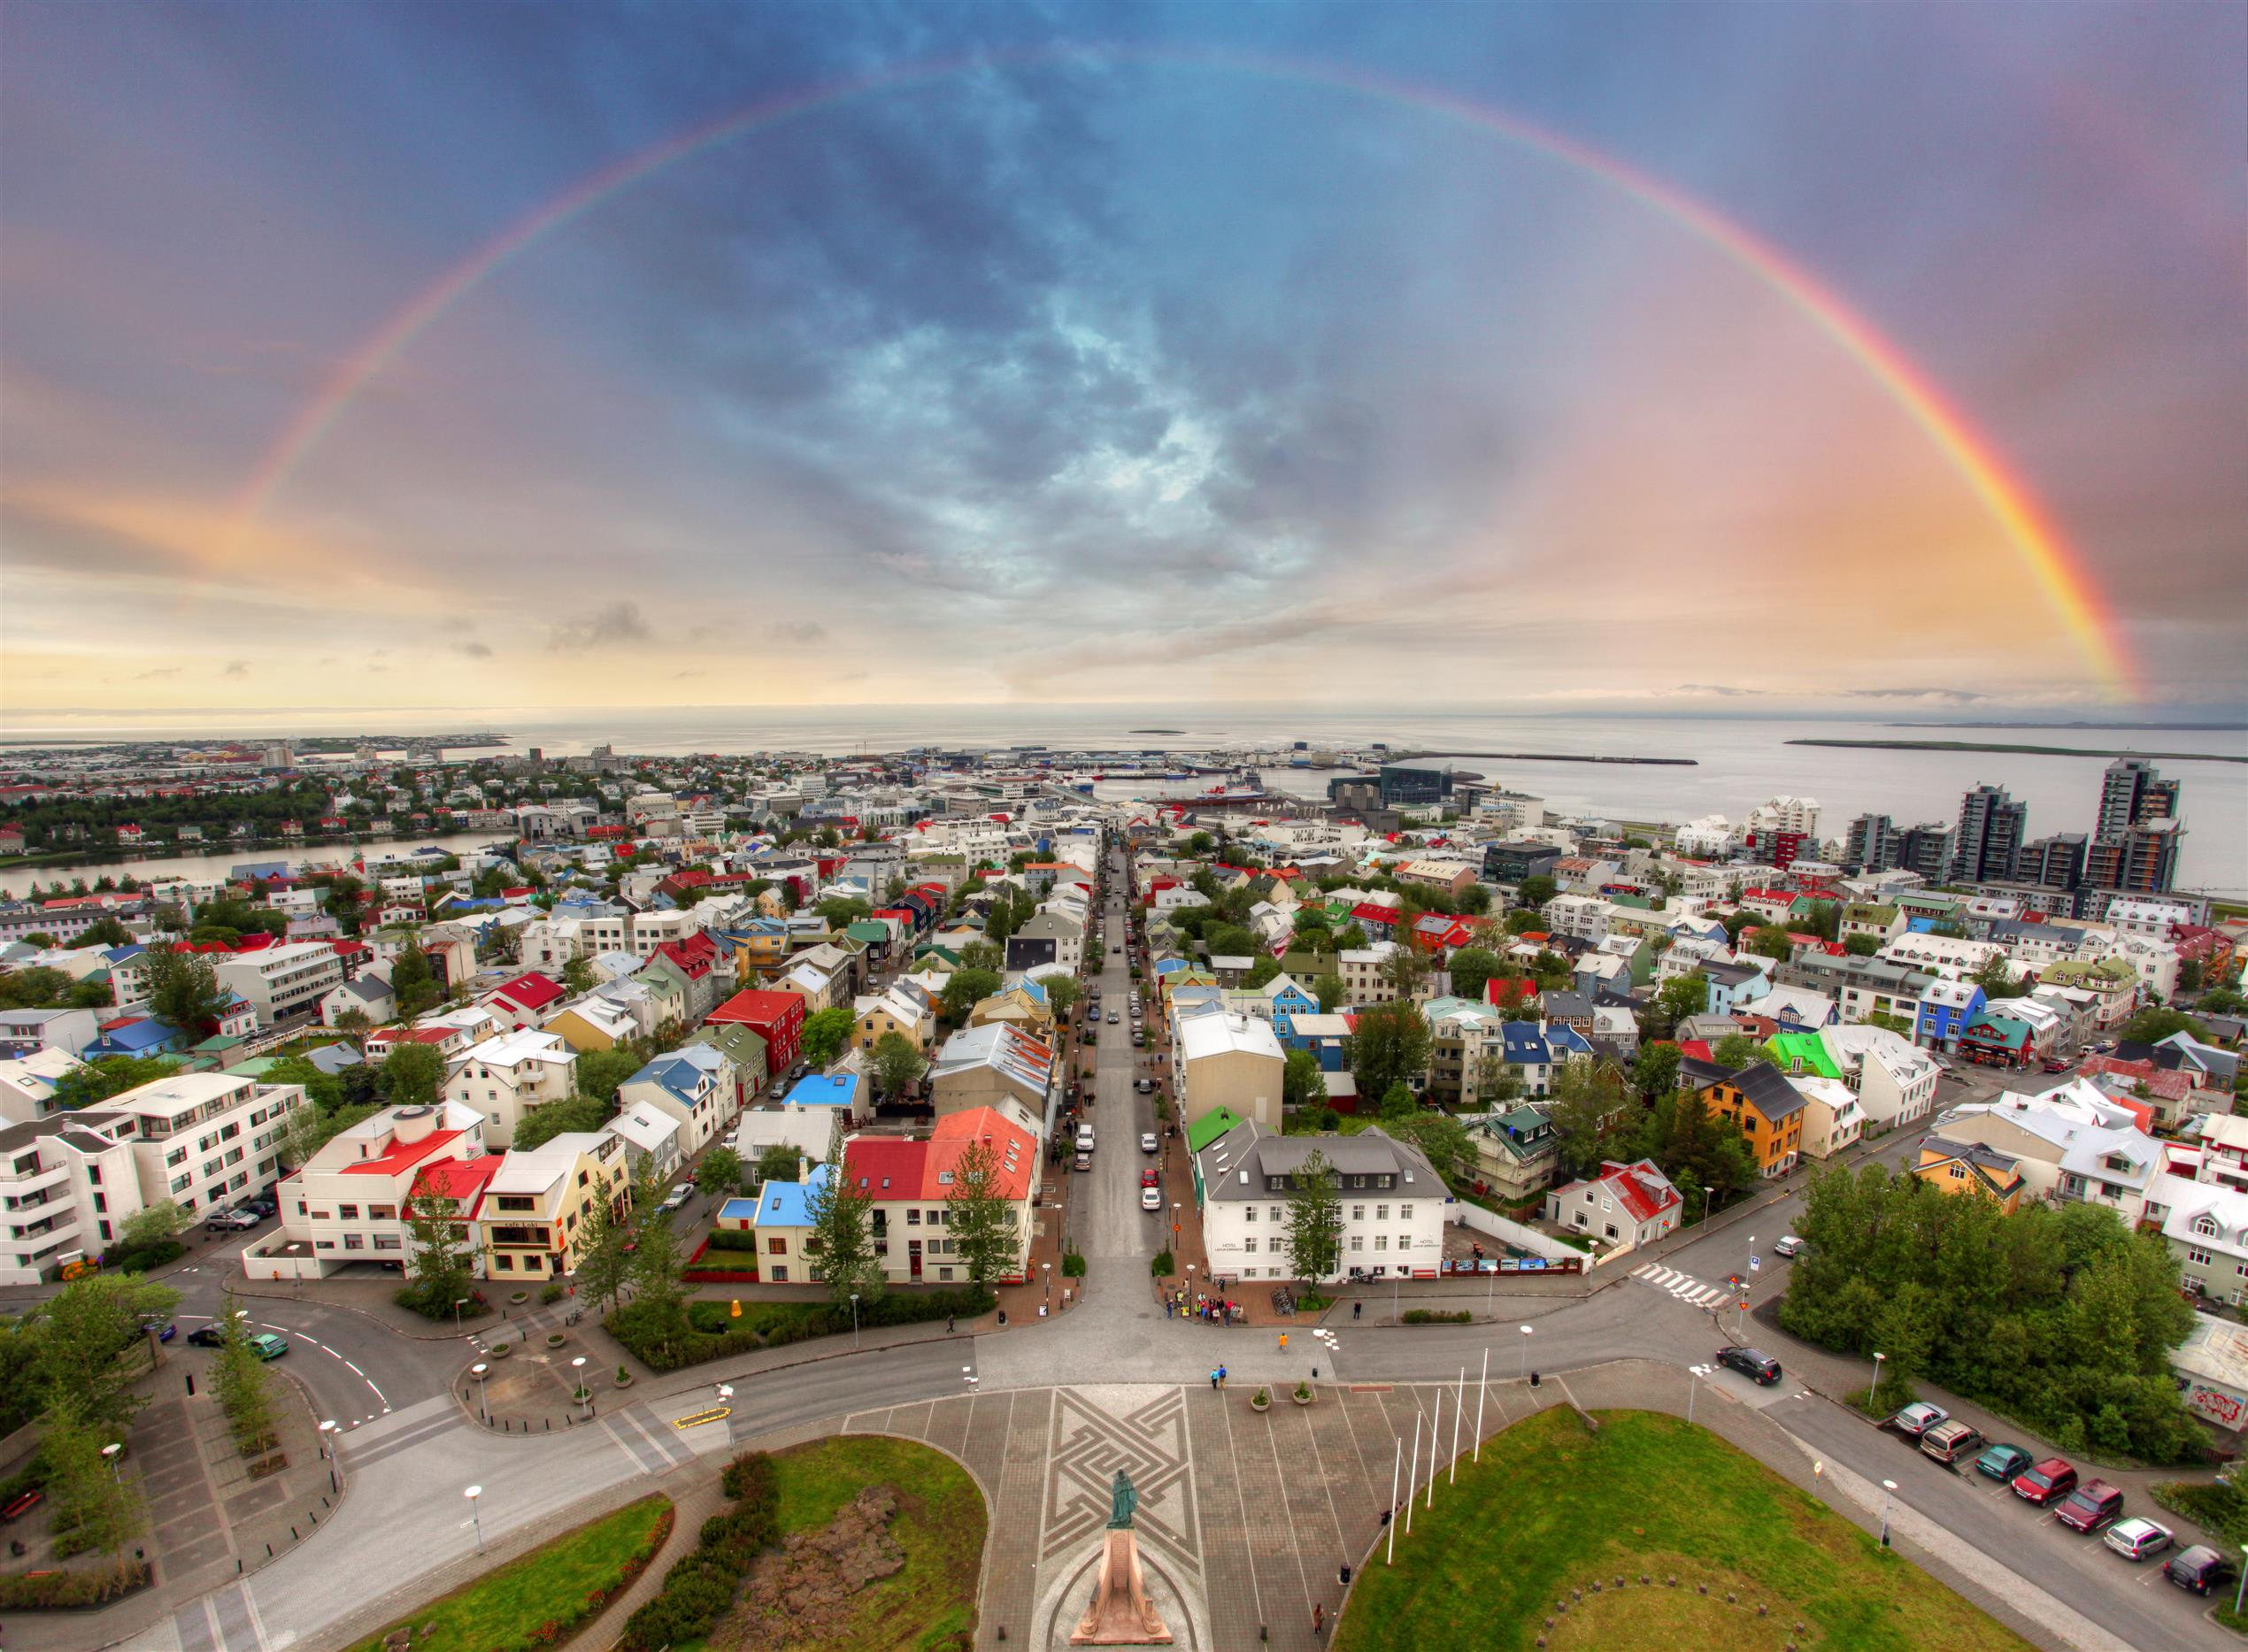 An overhead view of Reykjavik city on a bright day with a rainbow overhead that circles across the city